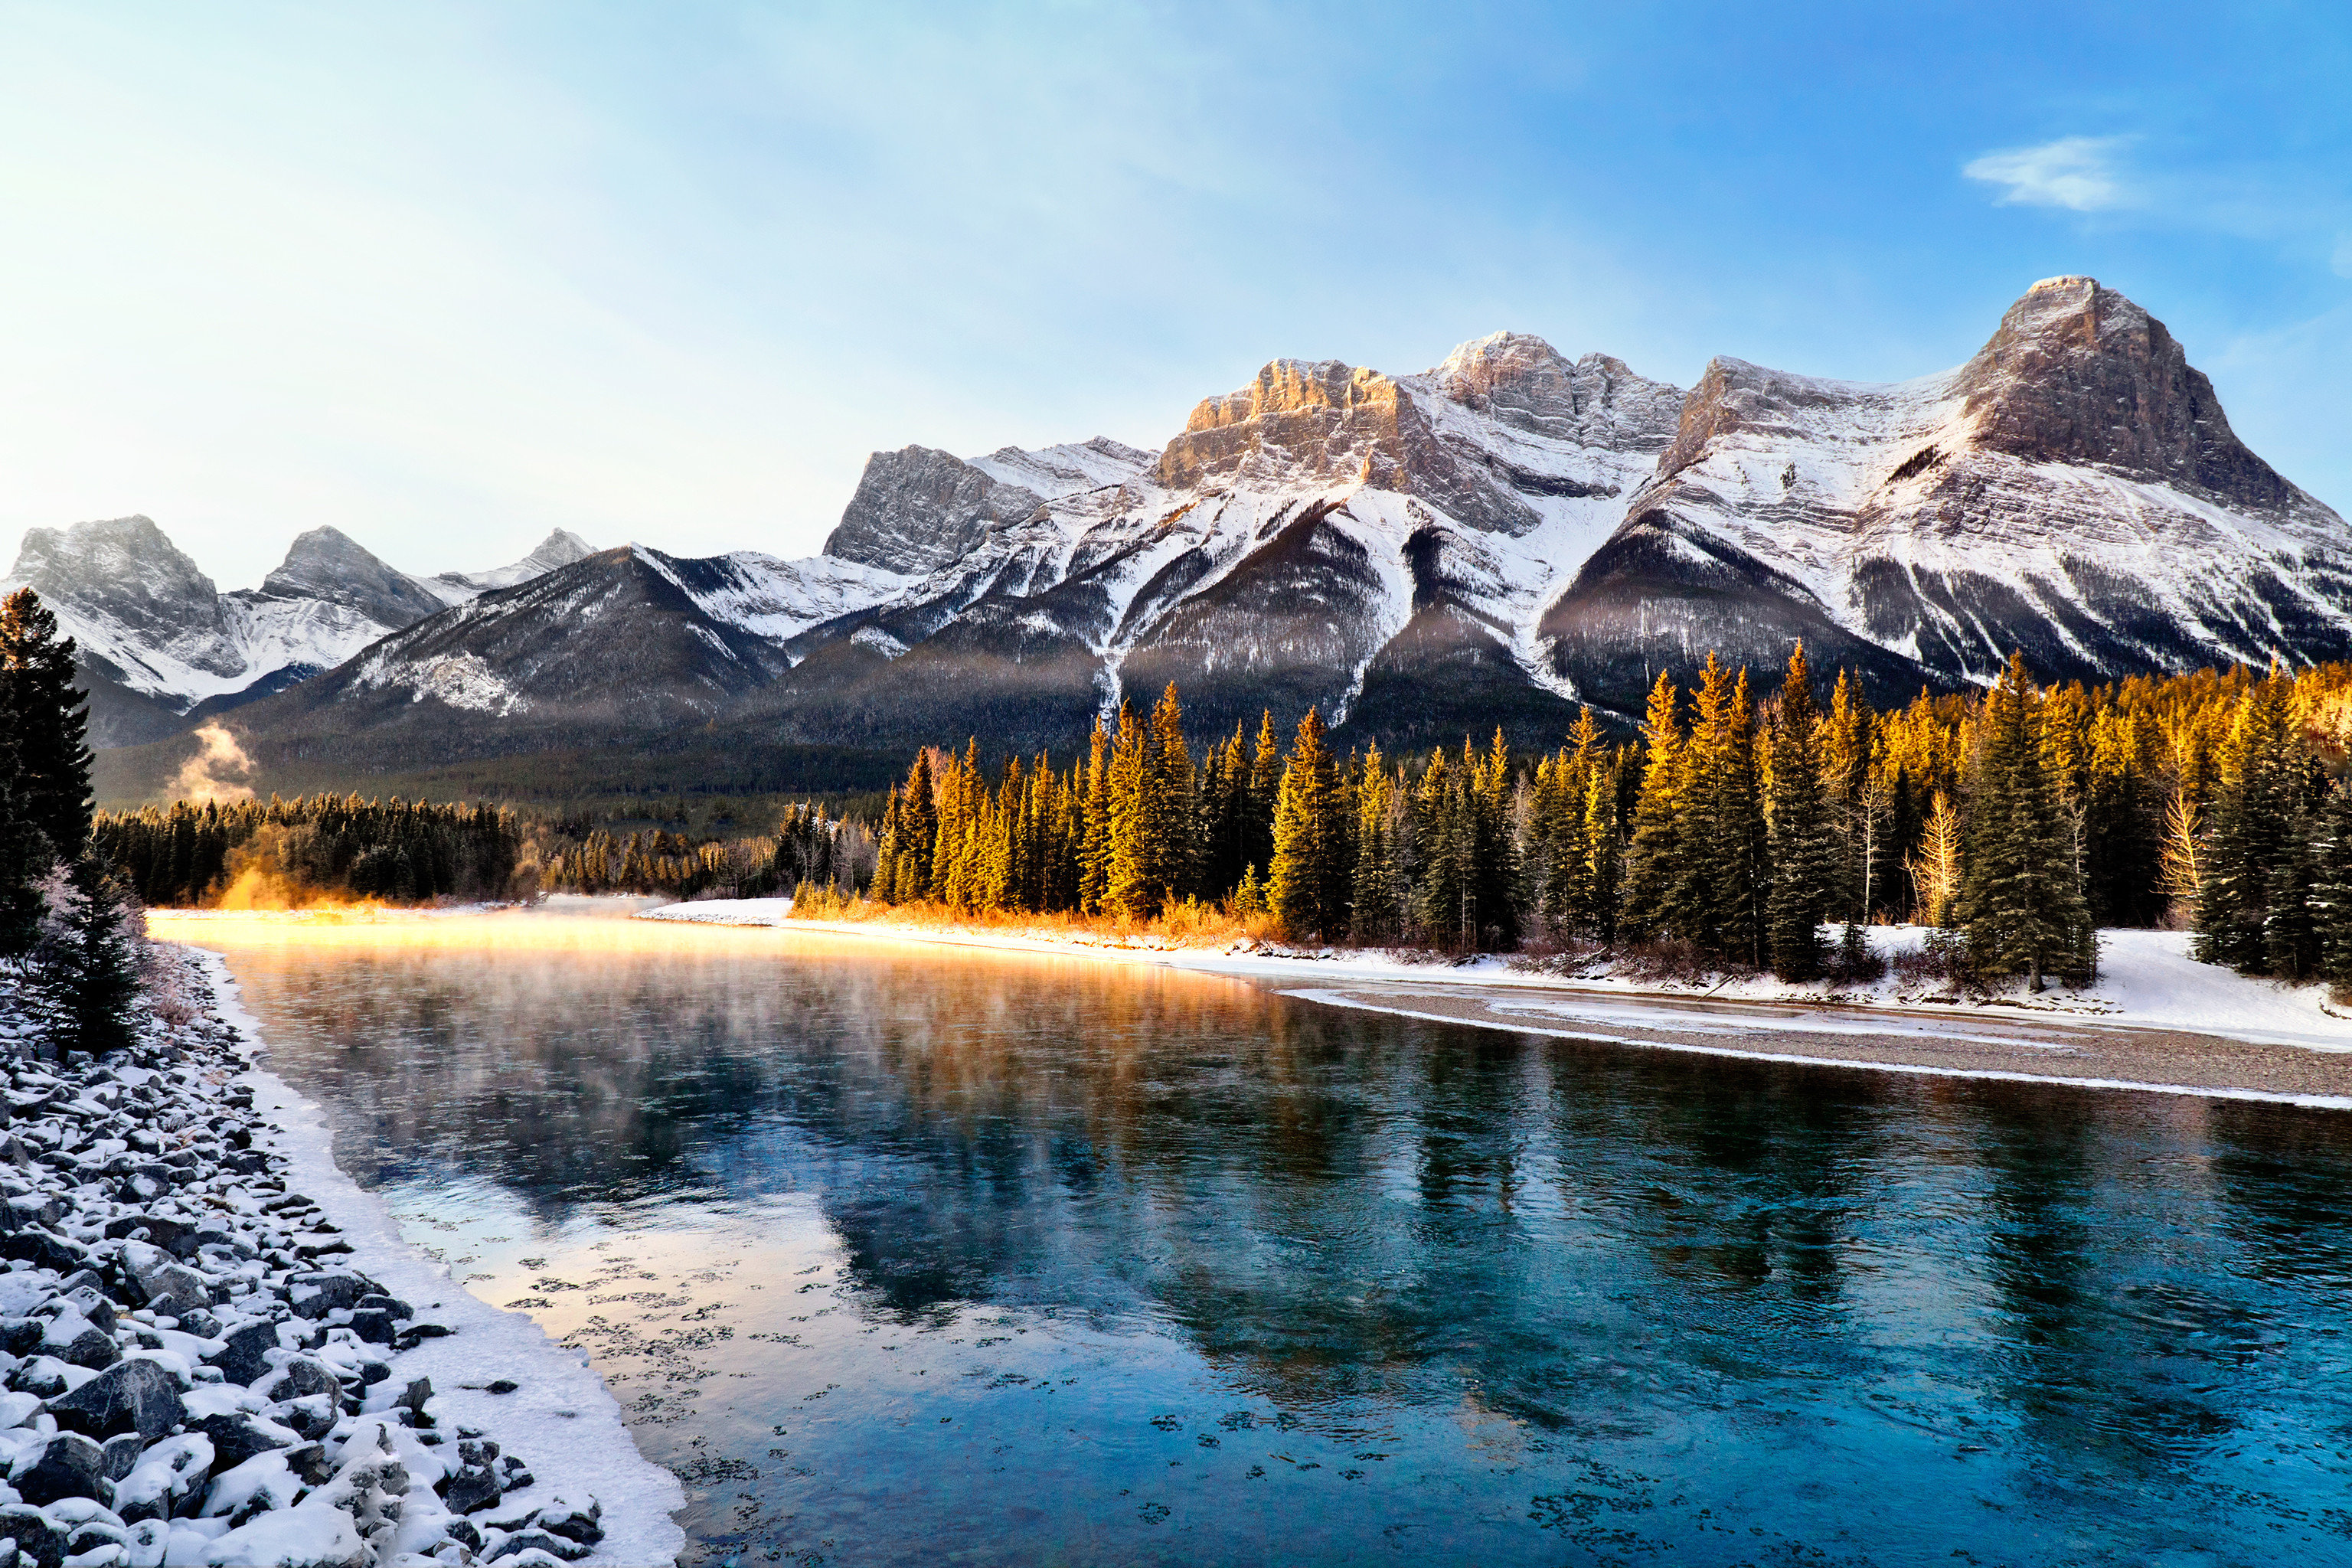 Lake Mountains Natural wonders Nature Outdoors Scenic views sky mountain snow mountainous landforms wilderness mountain range Winter water season morning landscape loch valley alps plateau pond autumn national park ice surrounded rock highland